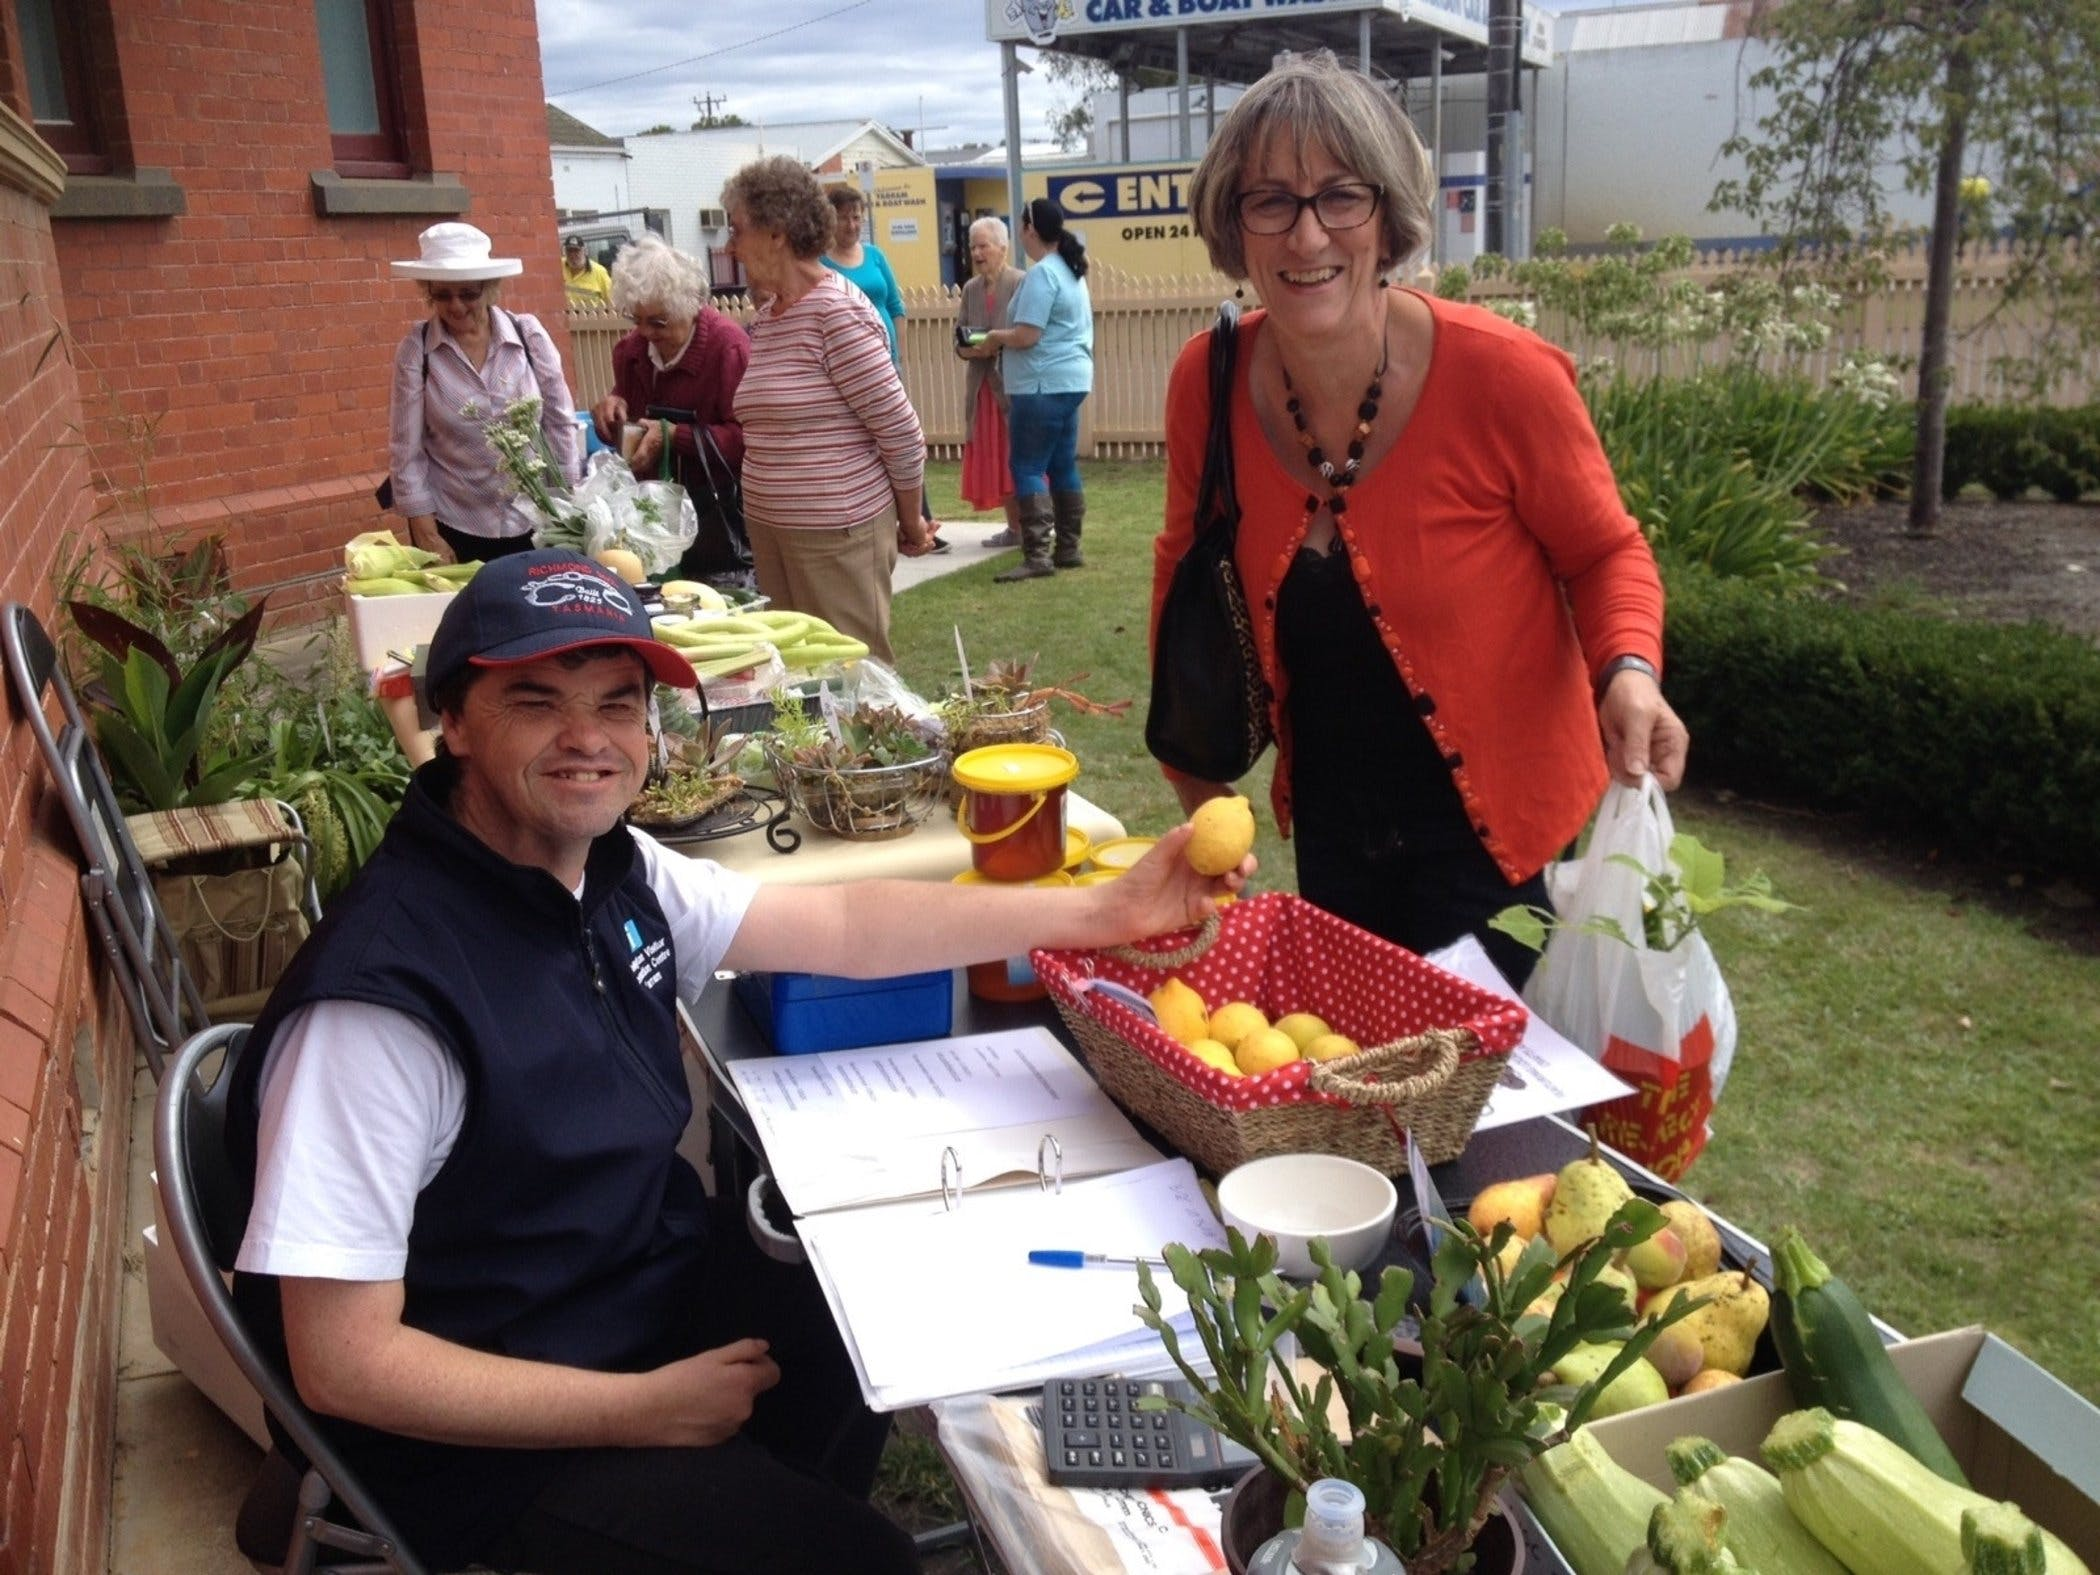 Yarram Courthouse Garden Produce Market - Accommodation Brisbane